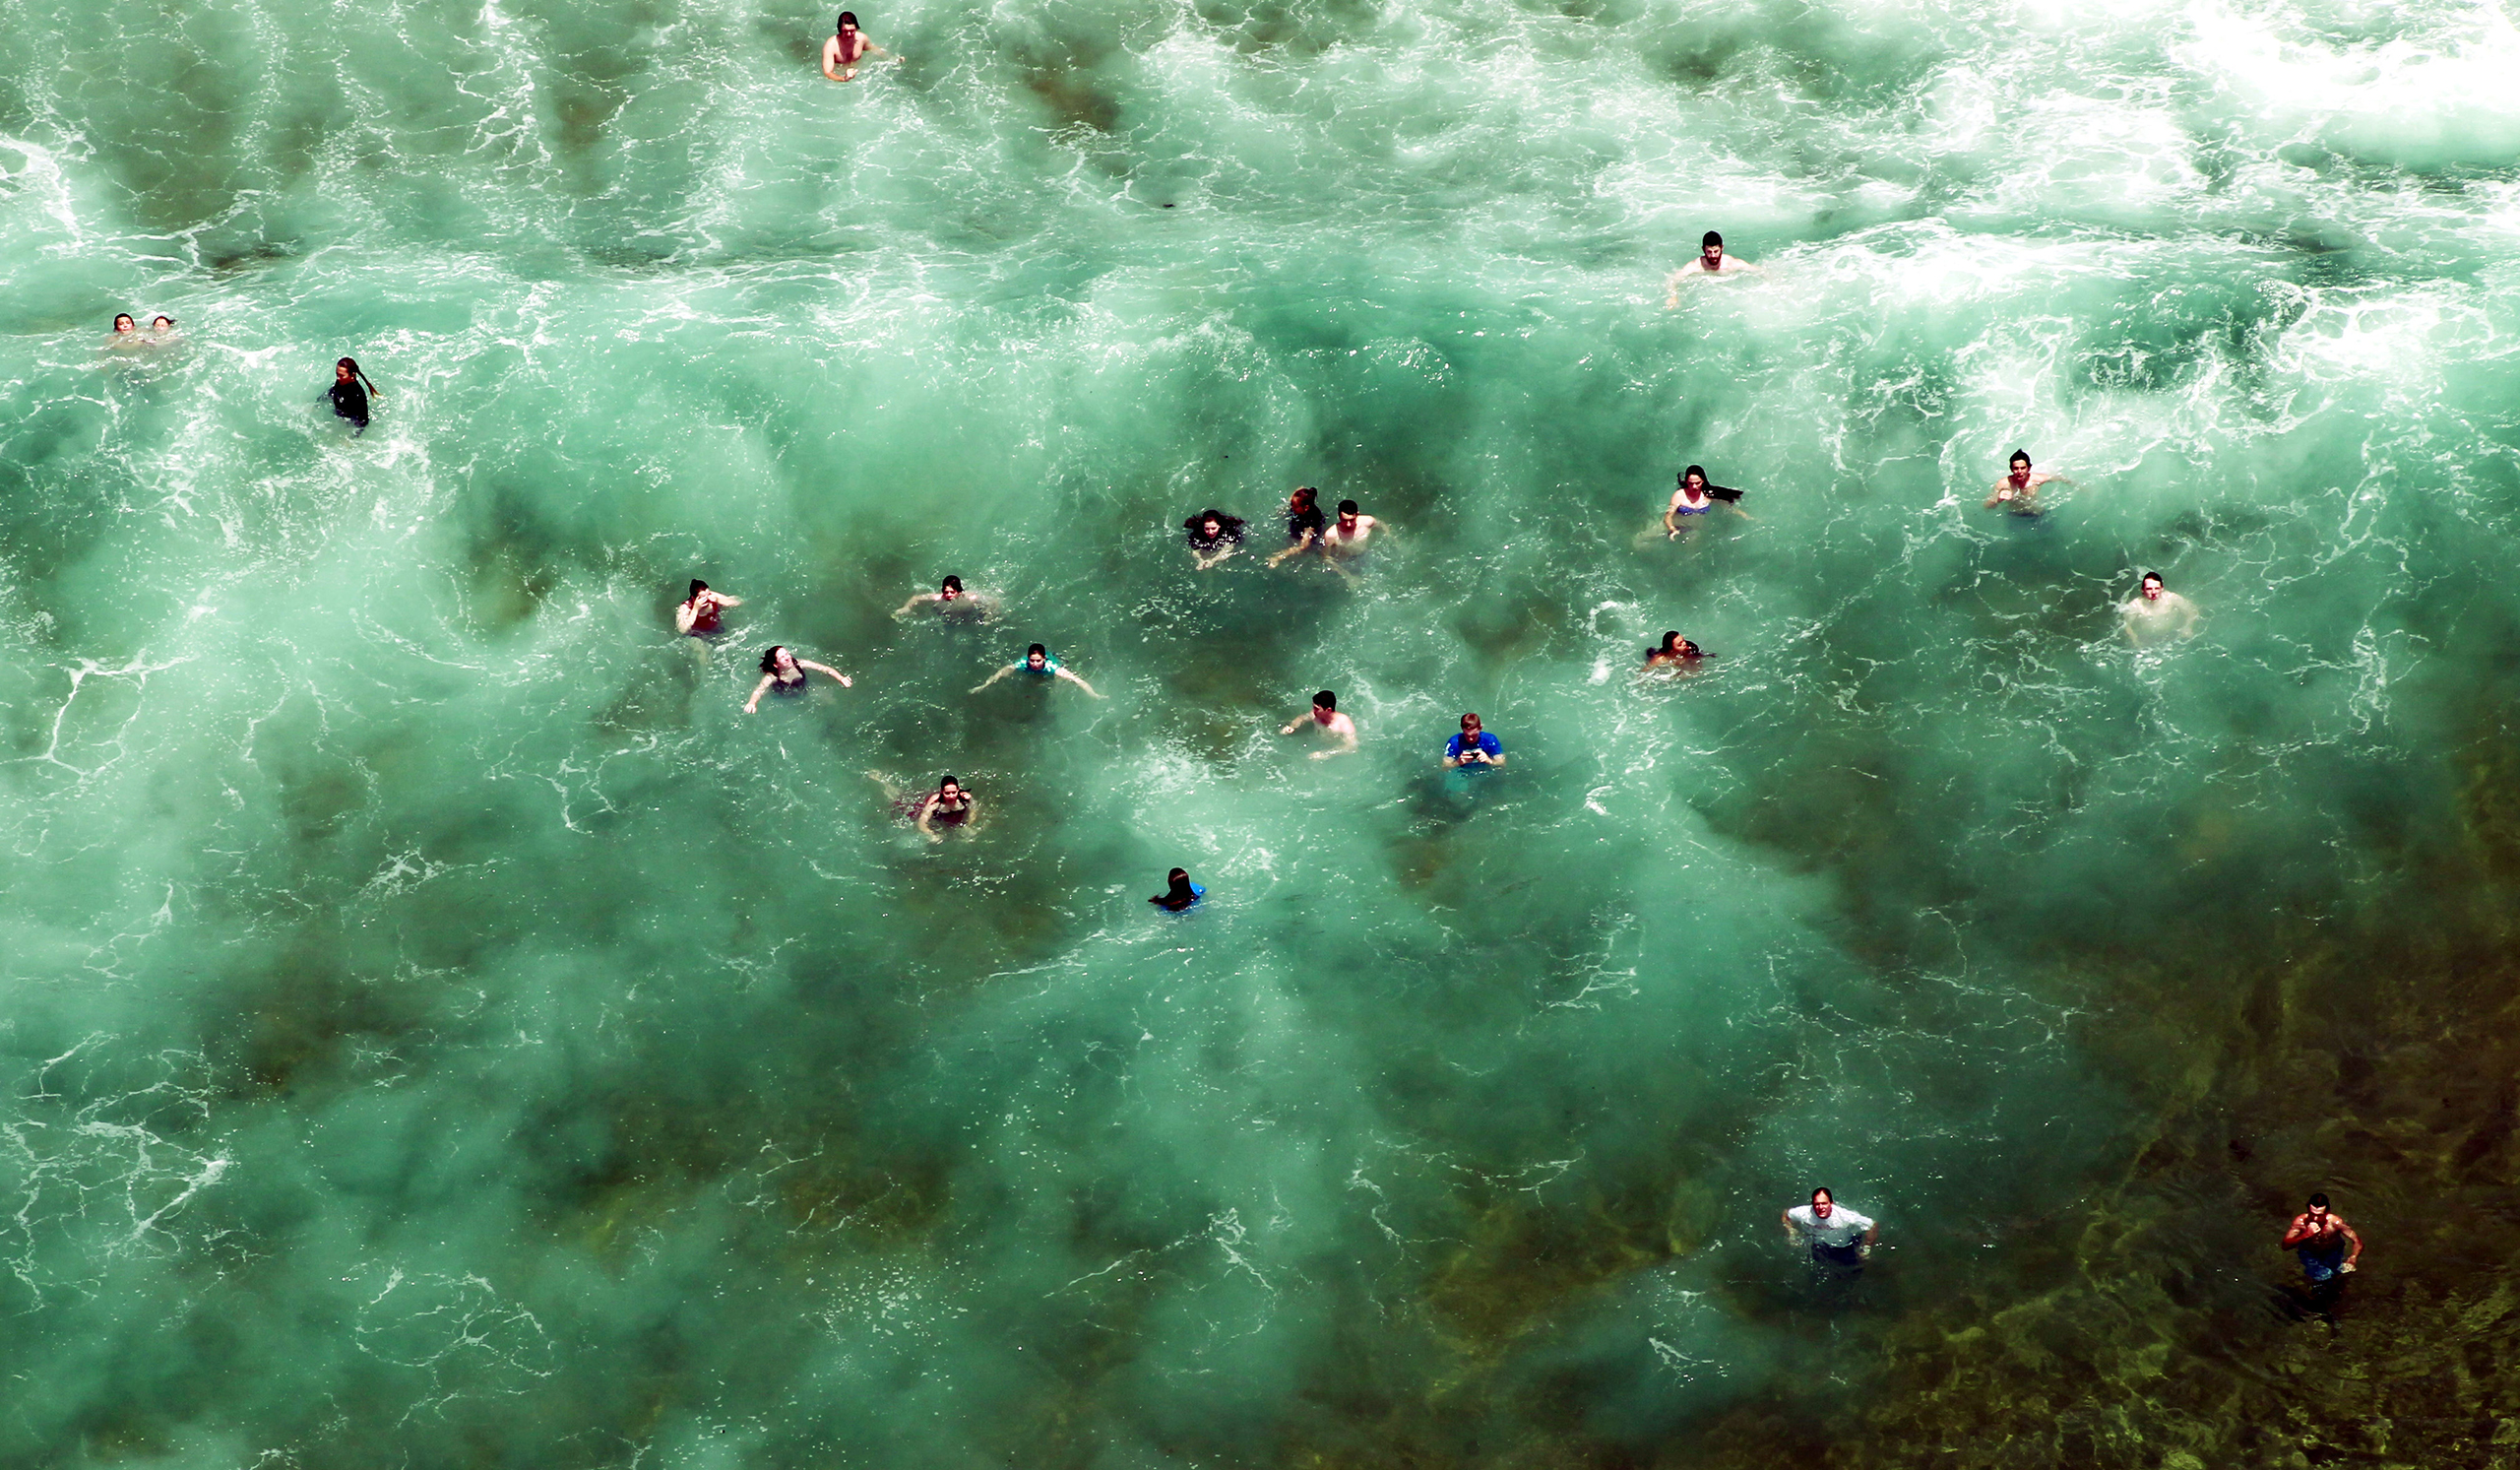 People escape the heat in the water at Avoca Beach as summer arrives on the Central Coast of New South Wales, Australia, Dec. 1, 2012.